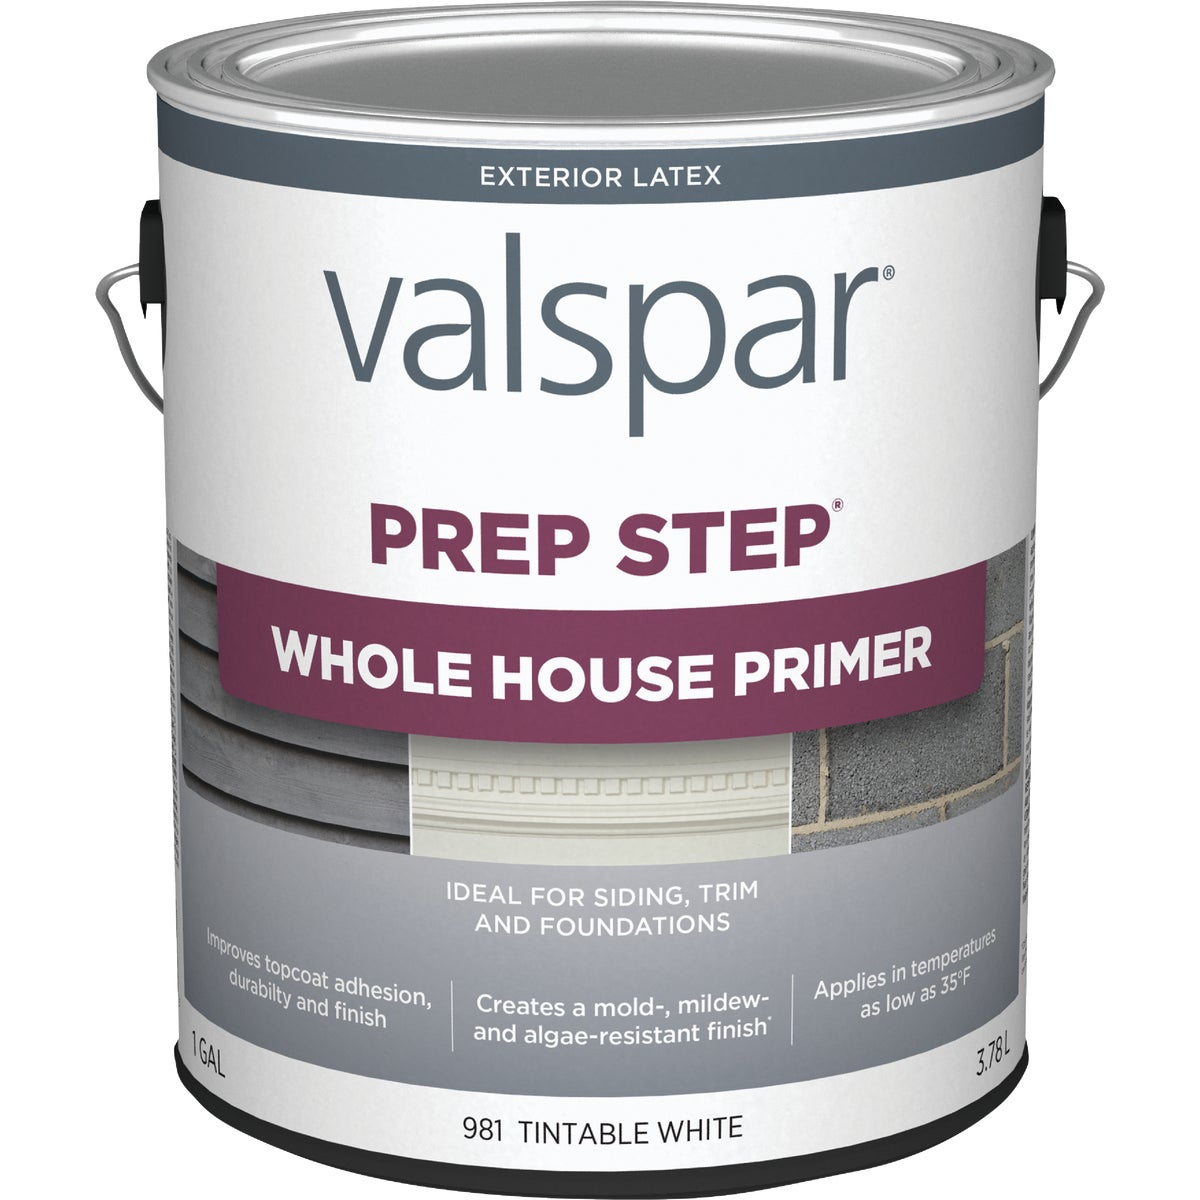 EXT LATEX WOOD PRIMER - 044.0000981.007 by Valspar Corp